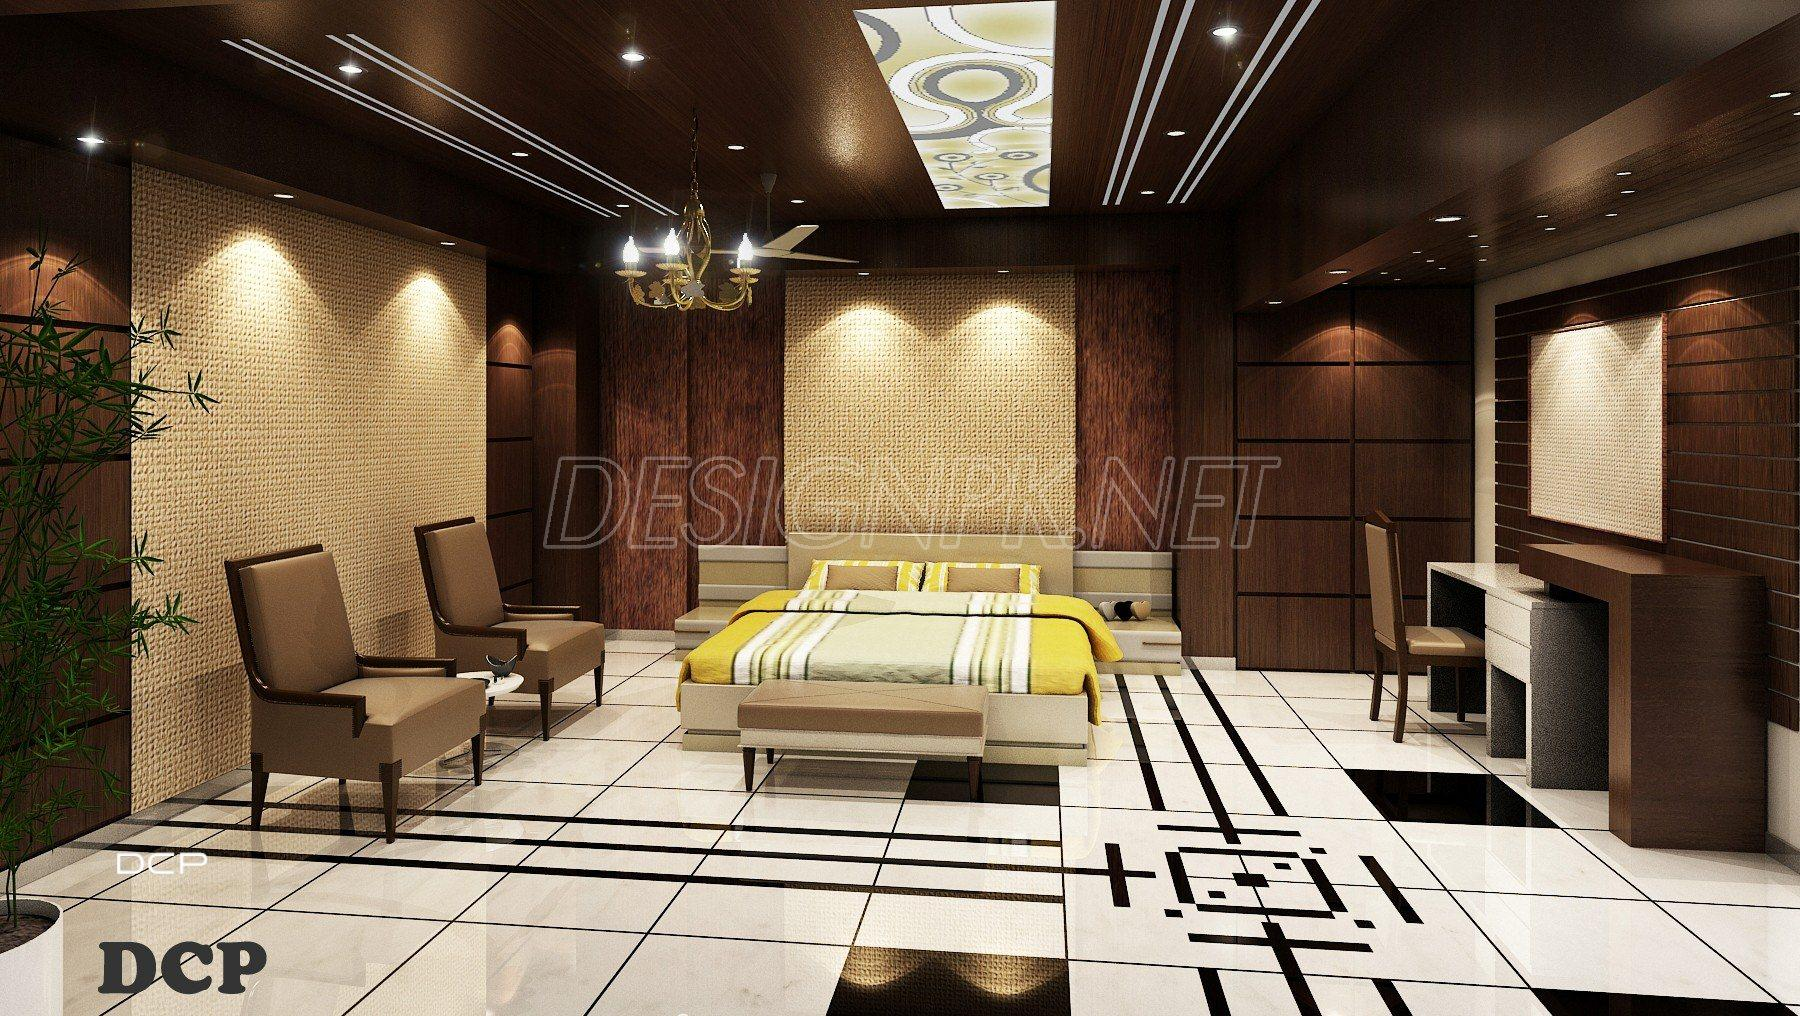 Bedroom-interior-design-dcp-pakistan-2